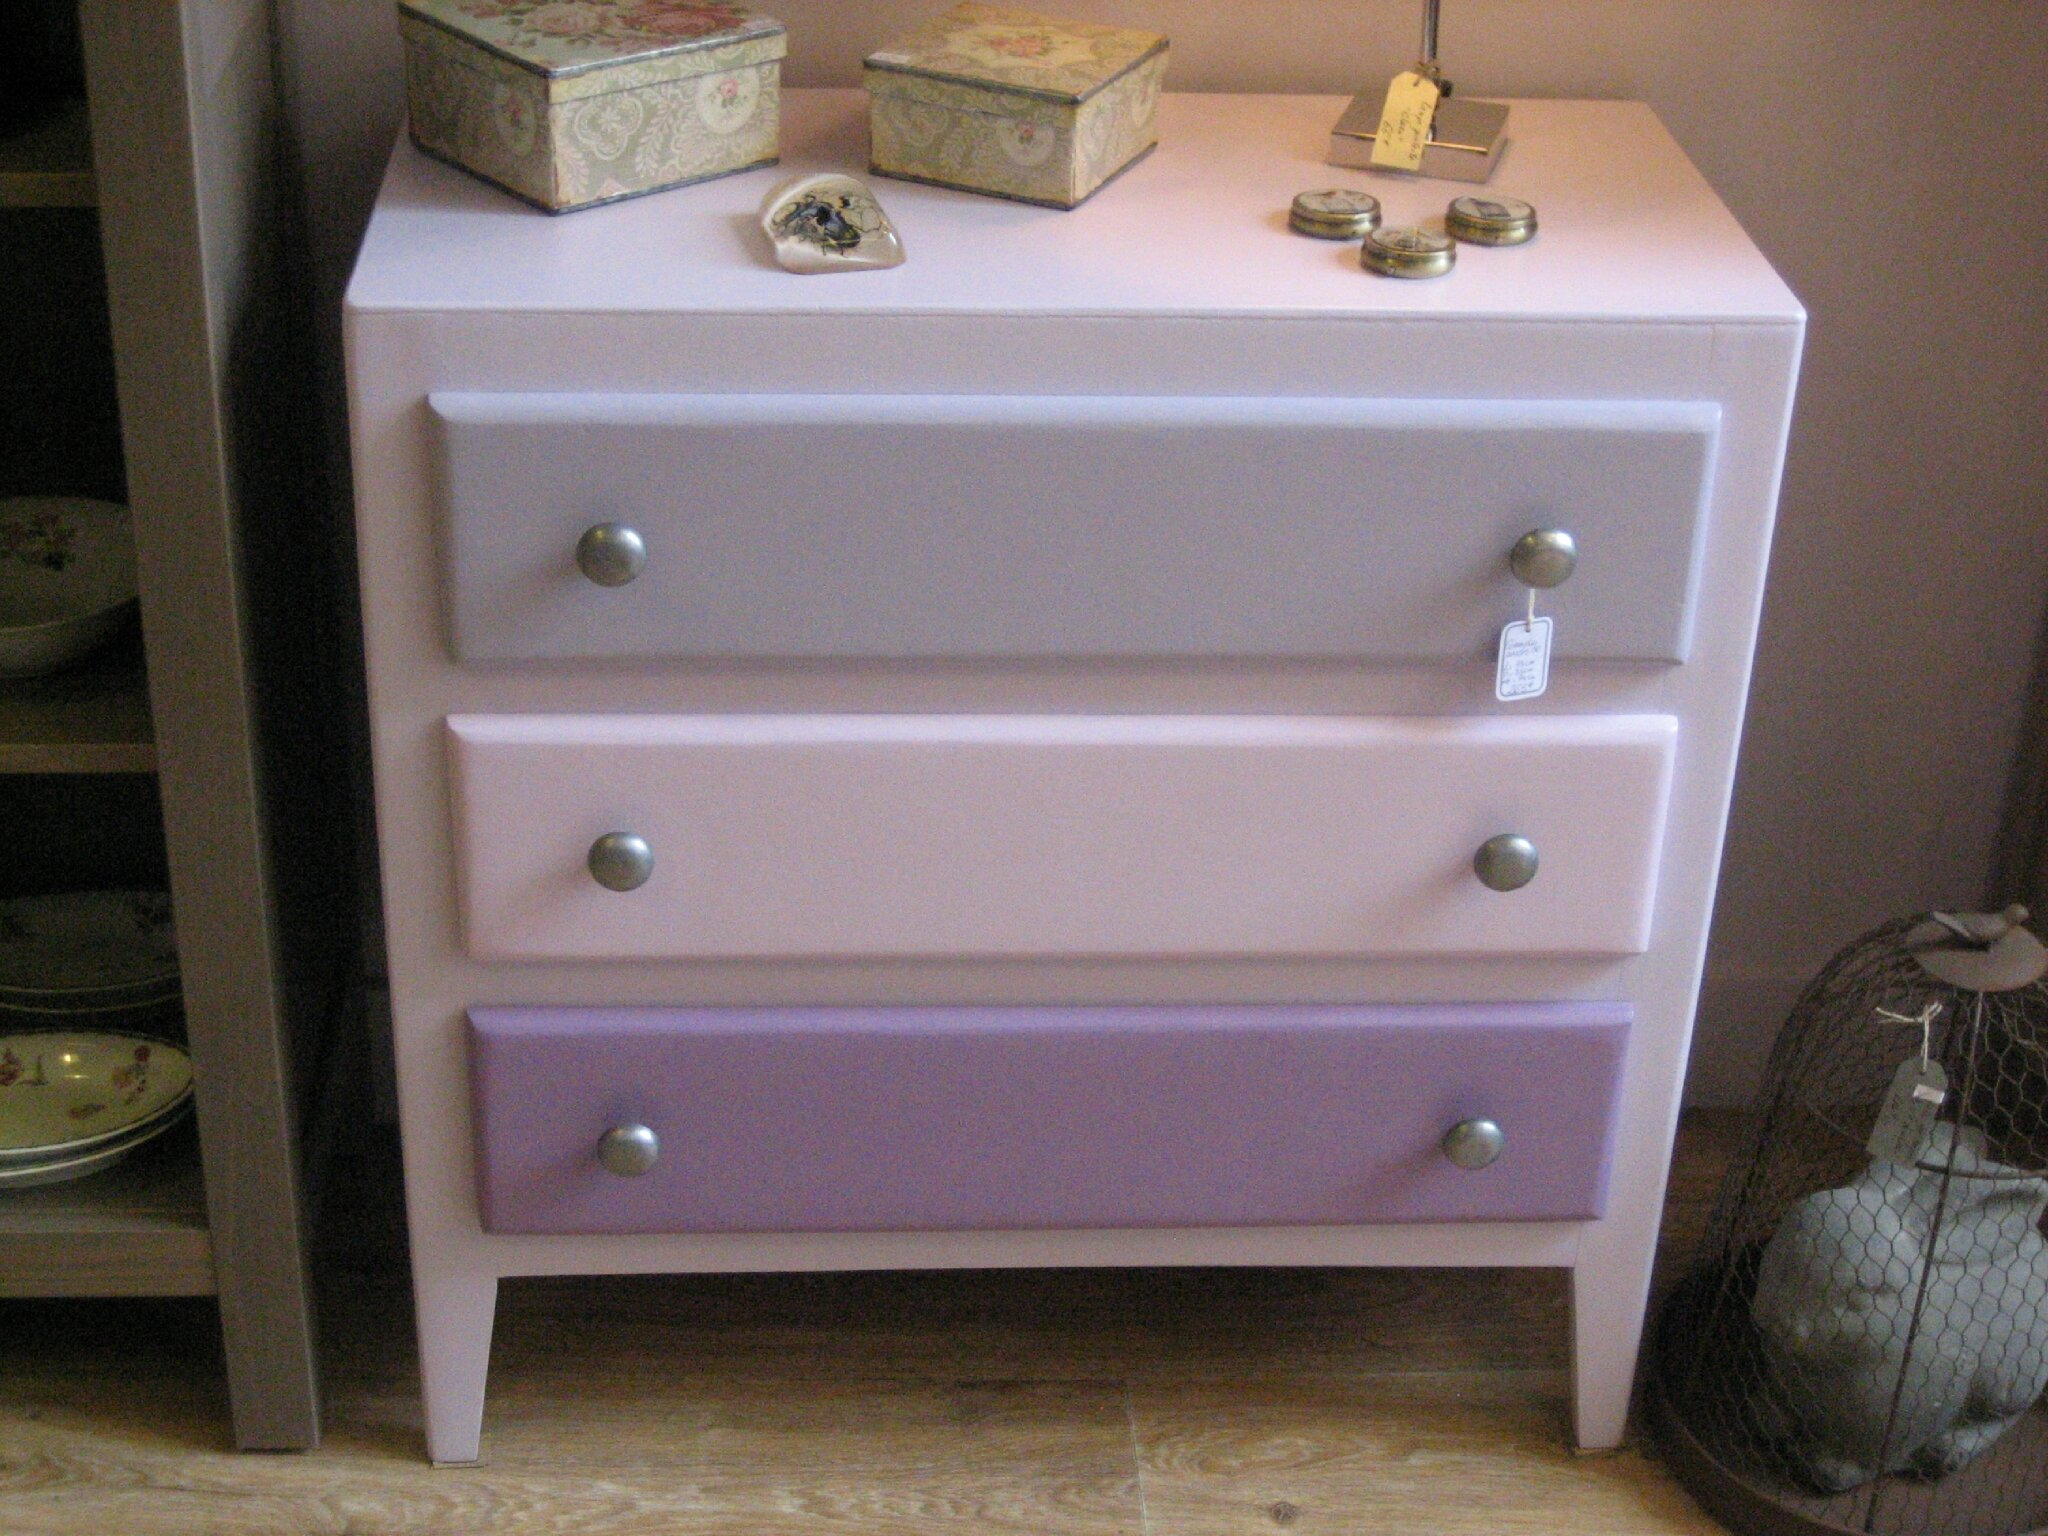 Meuble En Pin Brut Commode Speciale Fille. - Lilicabane